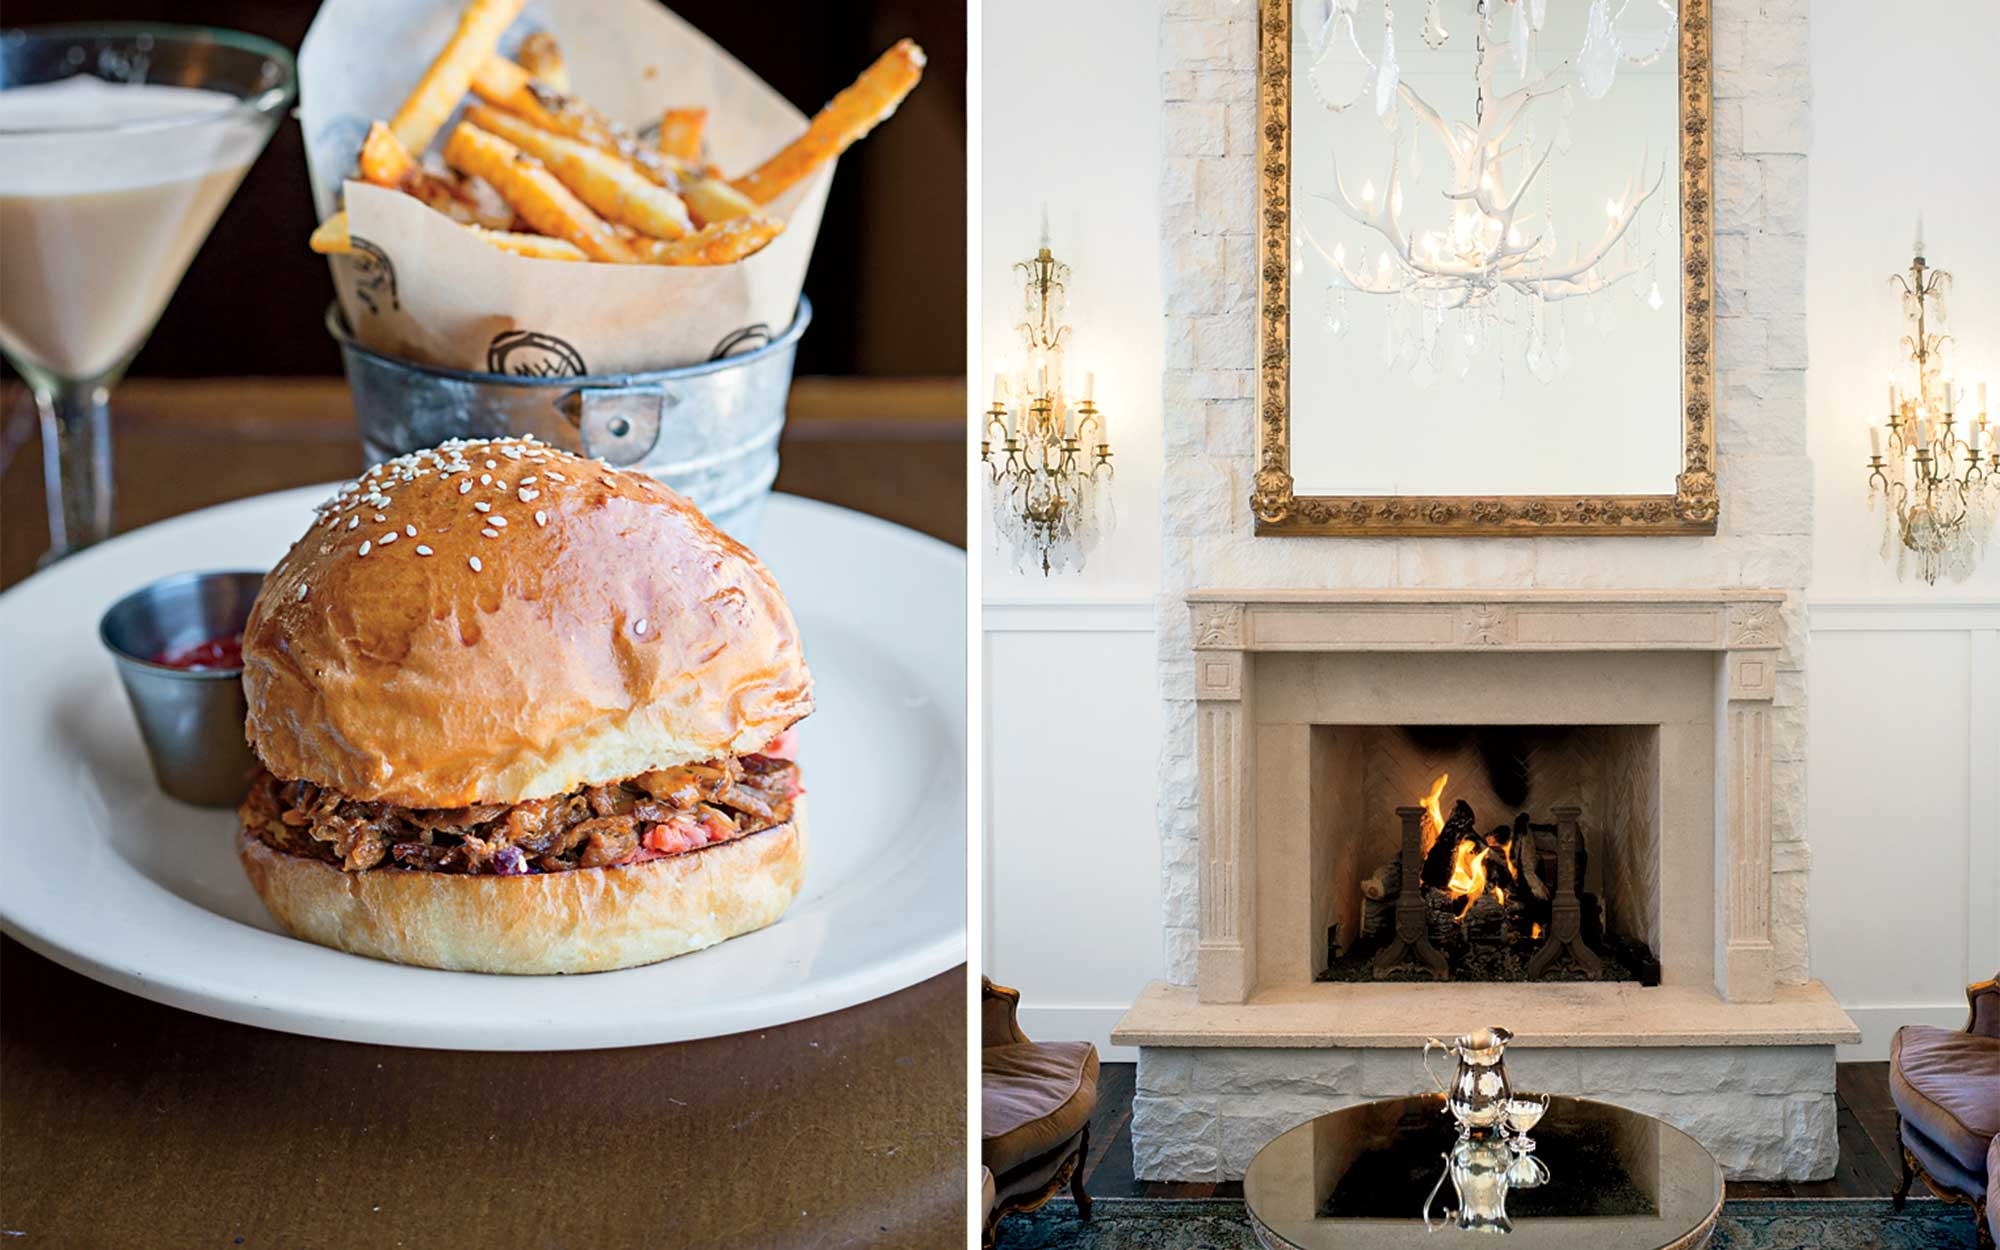 From left: a pulled-pork sandwich at High West Distillery; the lobby of Washington School House, a hotel in downtown Park City